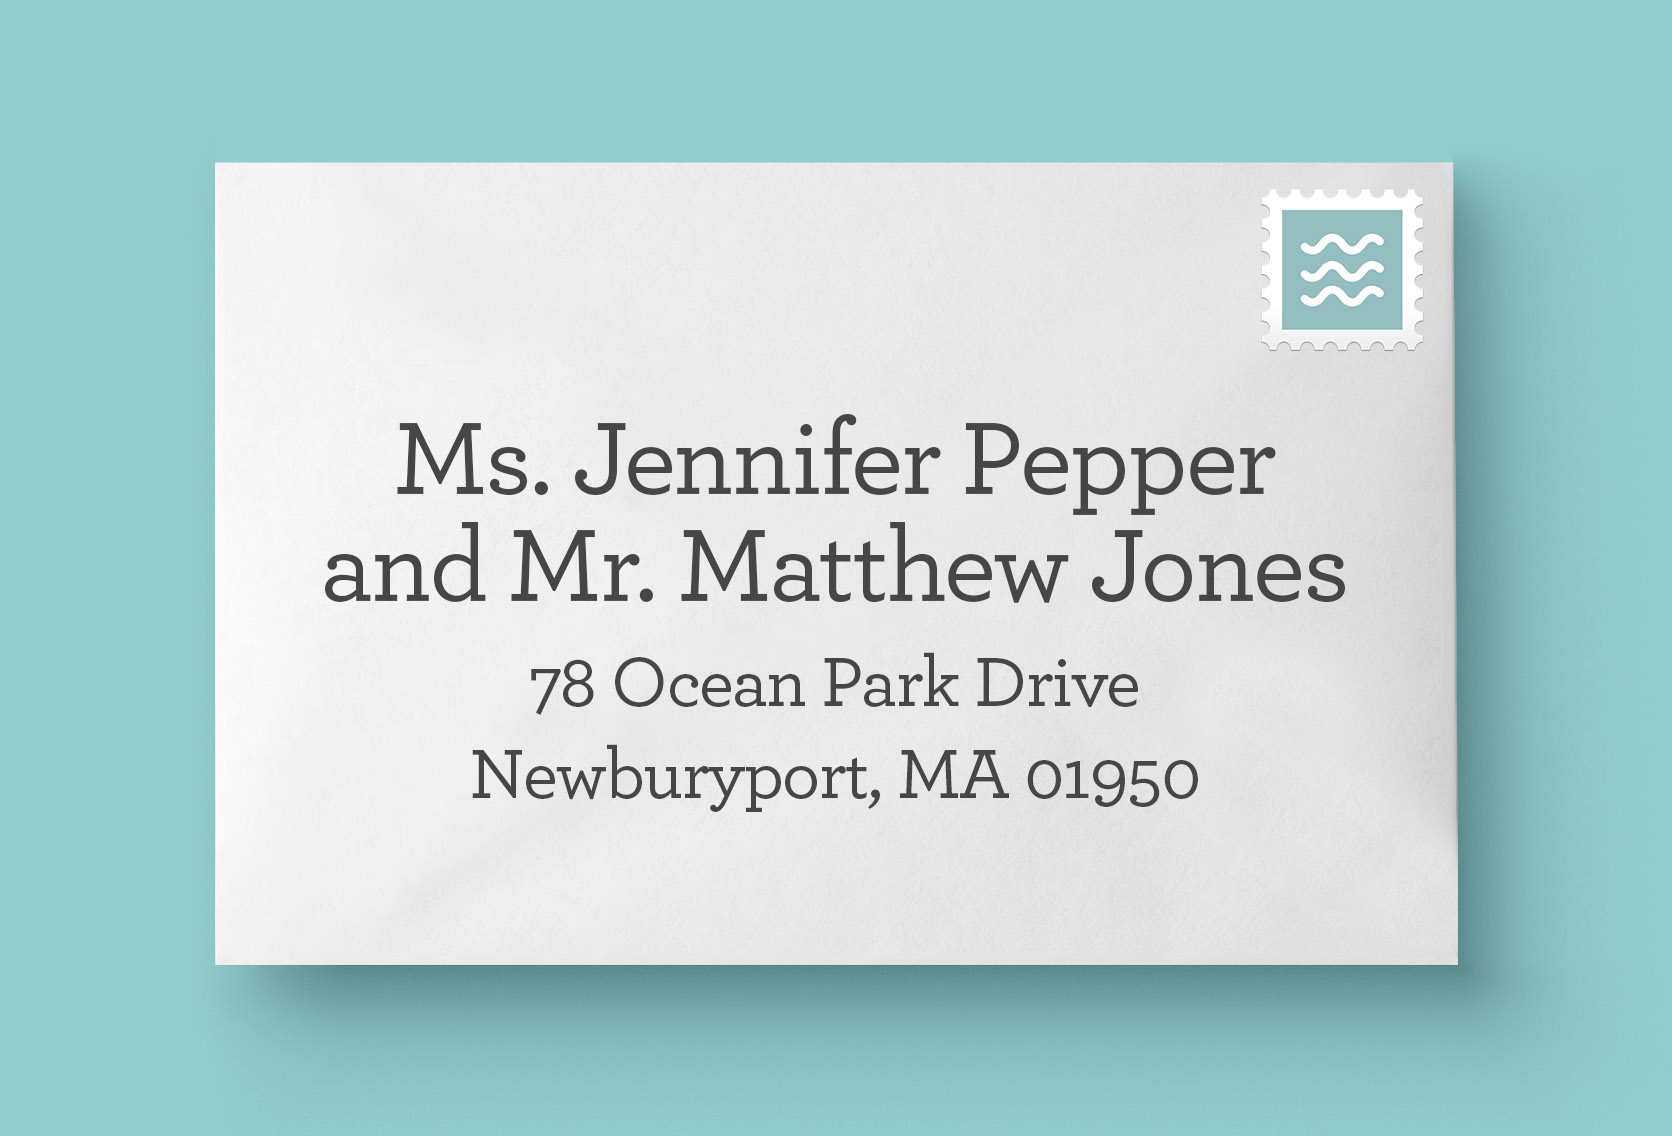 Married-different-names-envelope-address